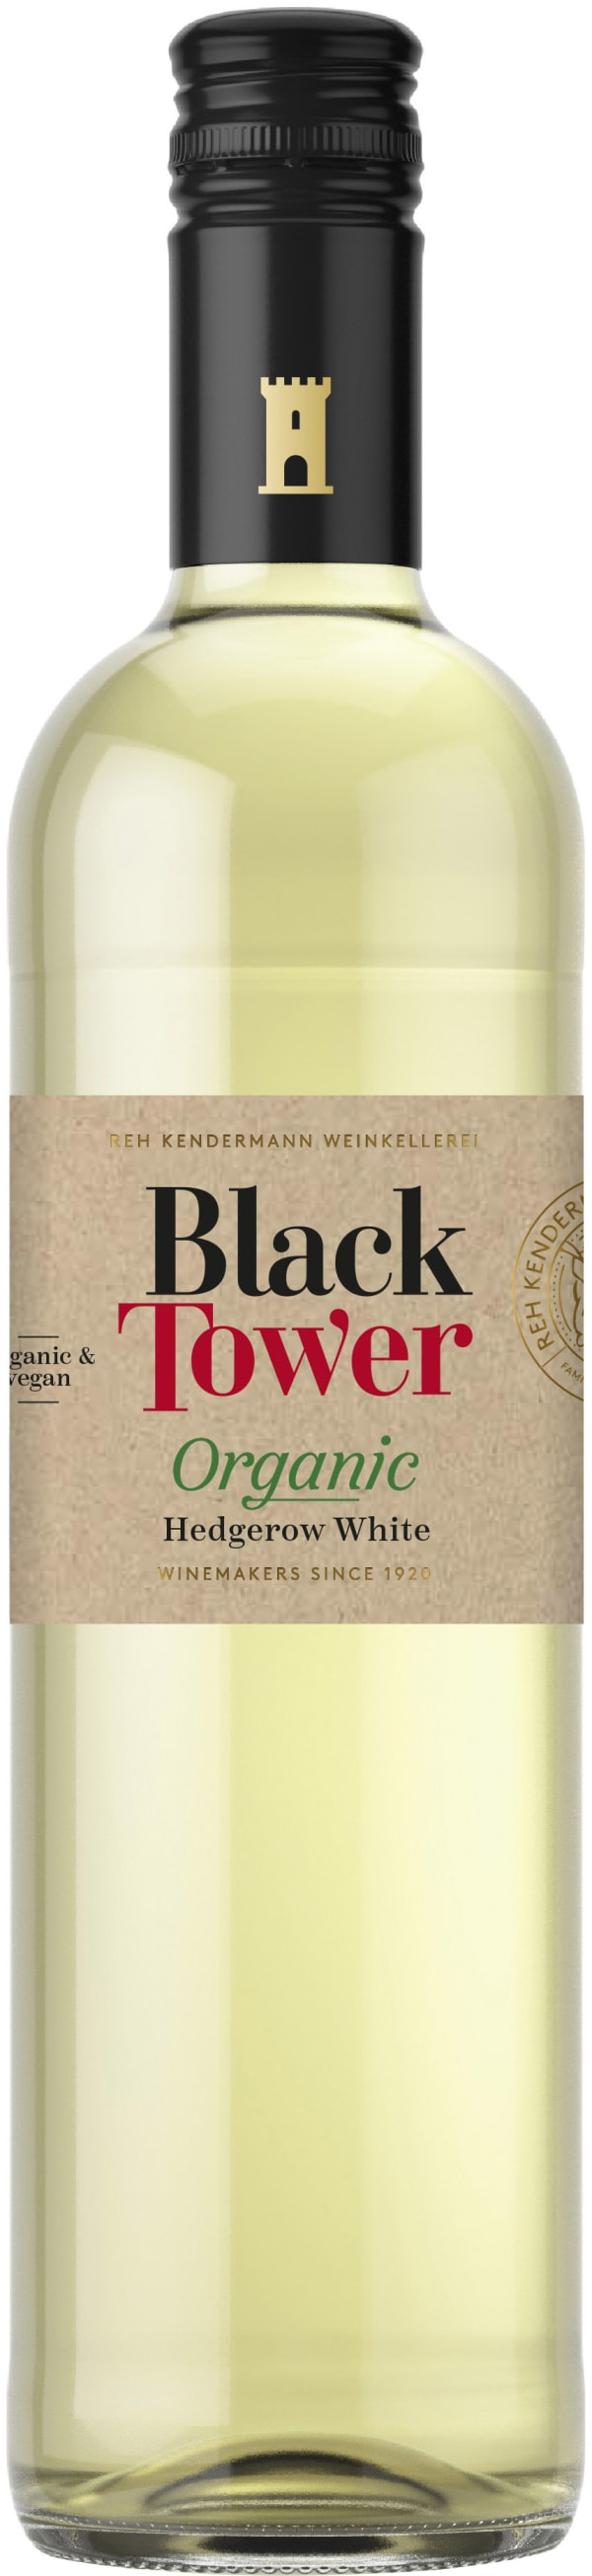 Black Tower Hedgerow Organic 2016